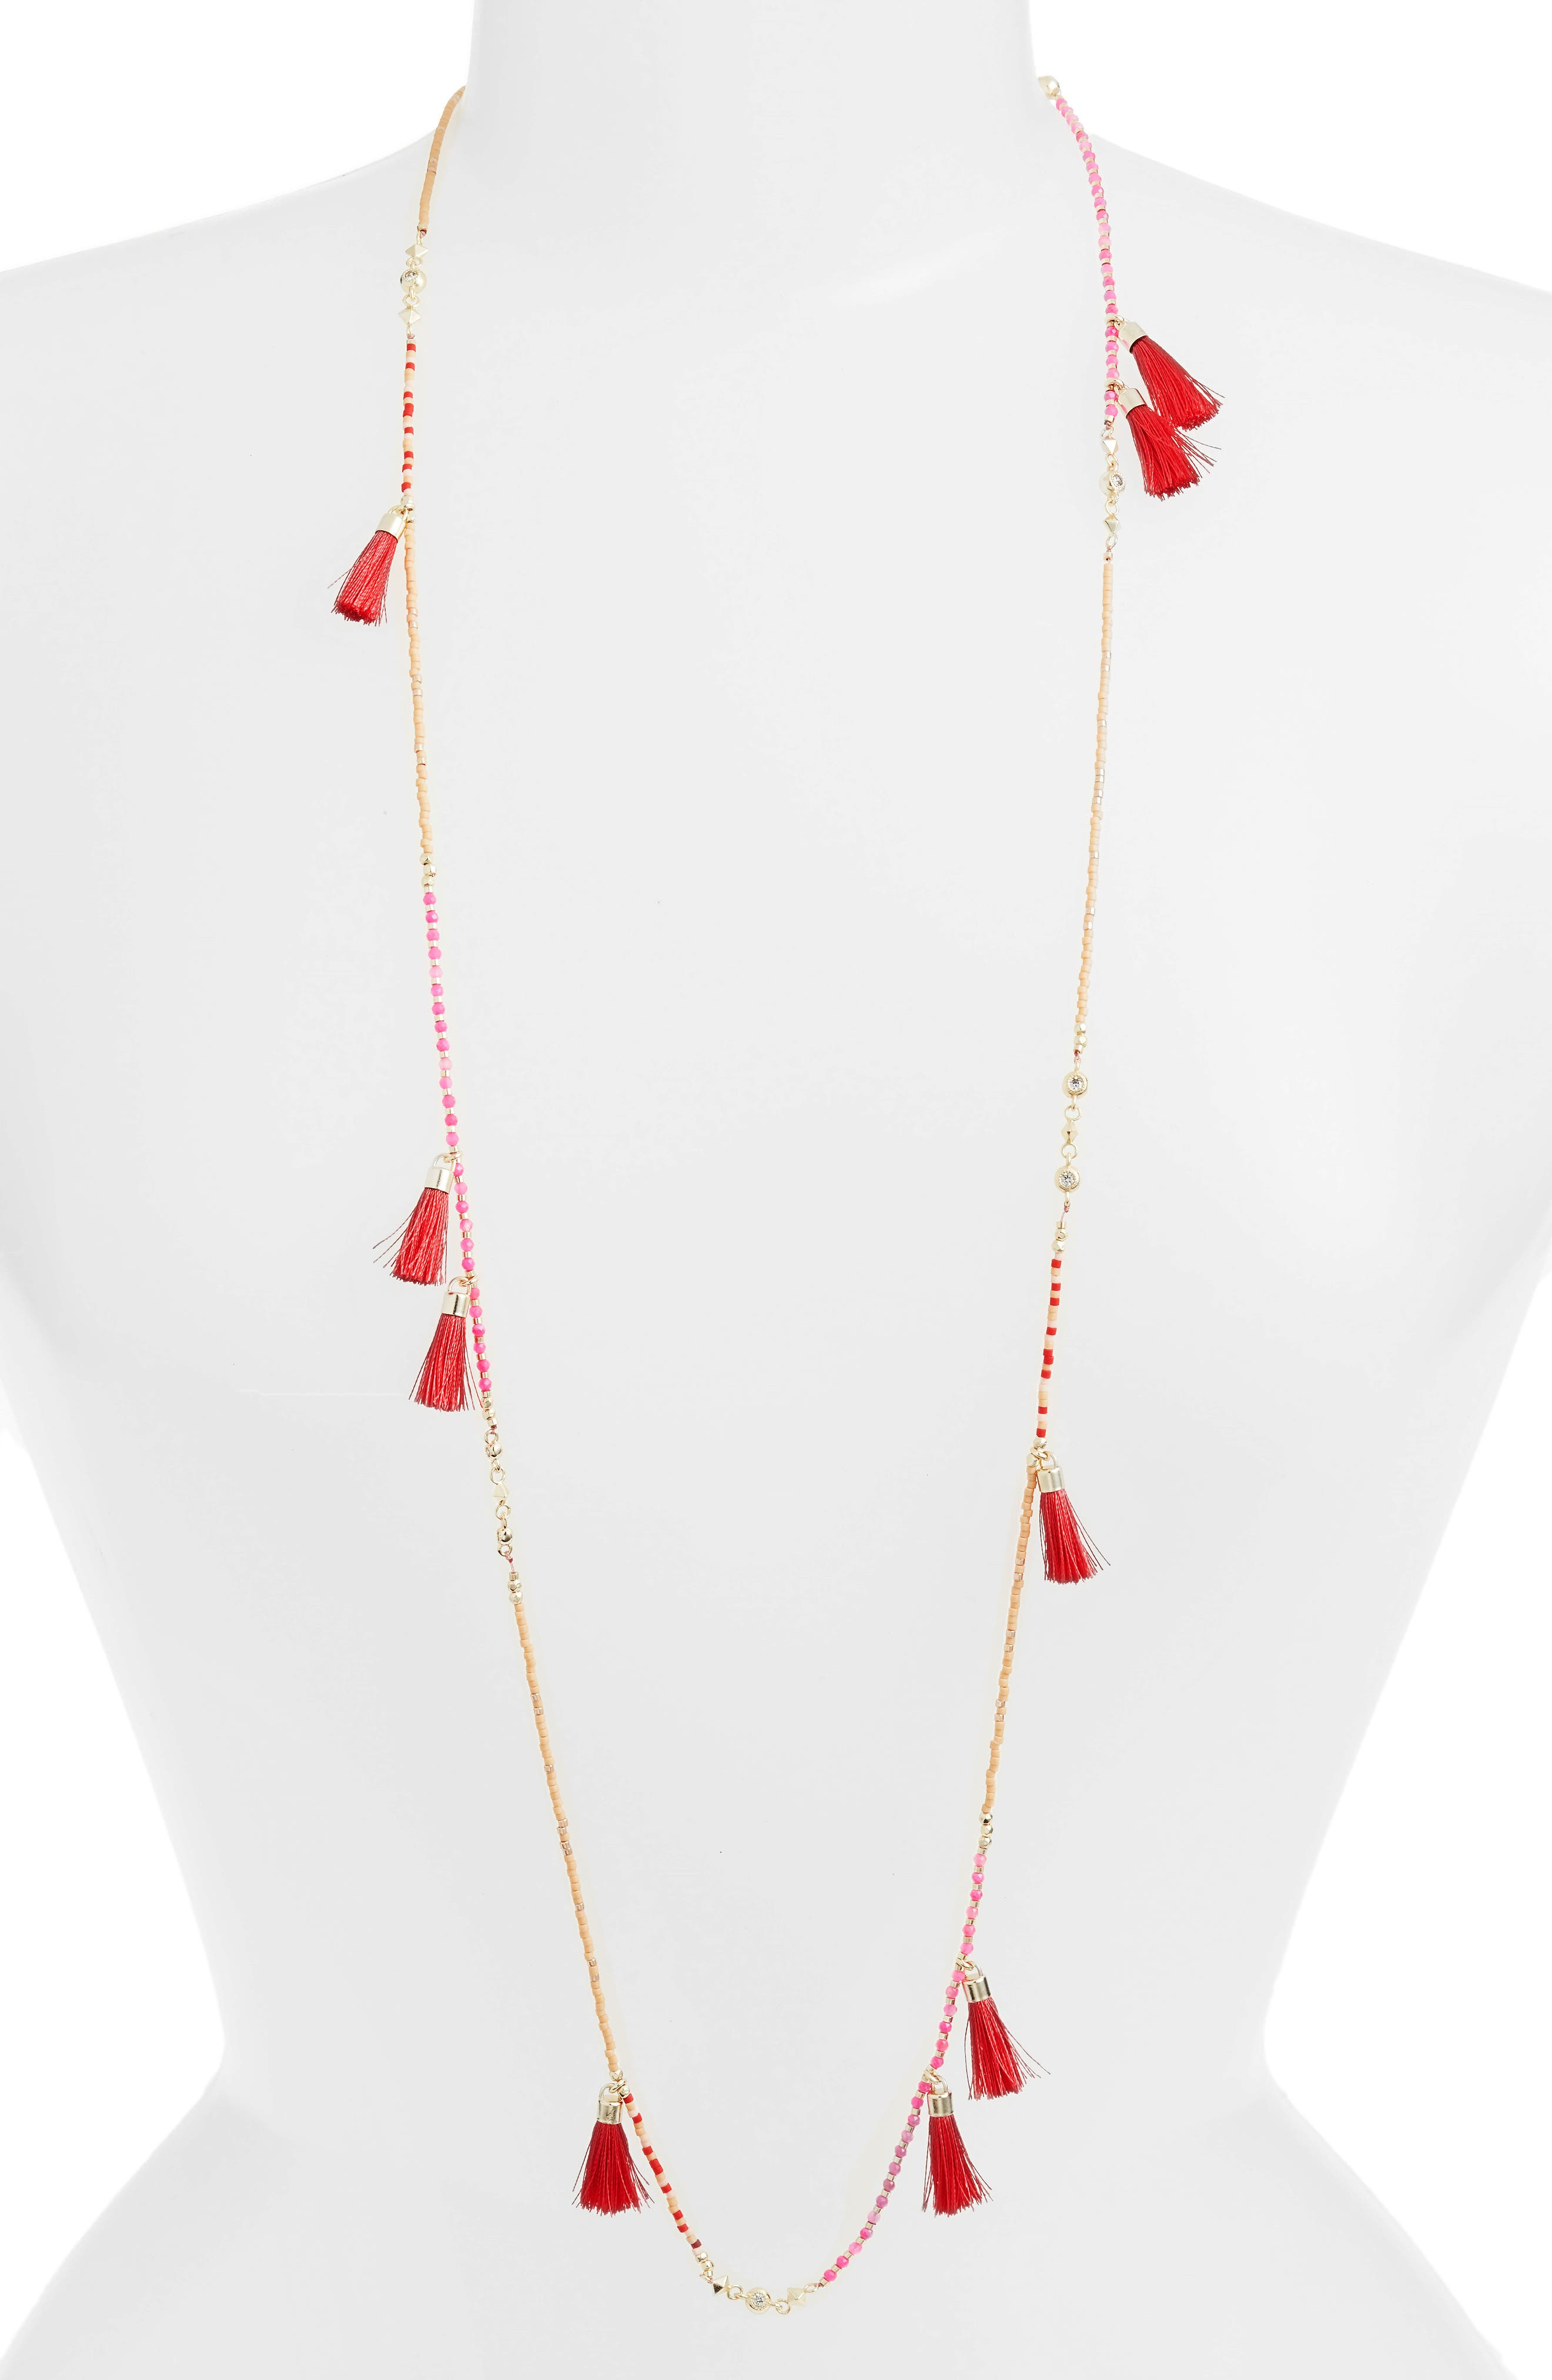 Augusta Tassel Necklace,                         Main,                         color, Pink Mix/ Gold